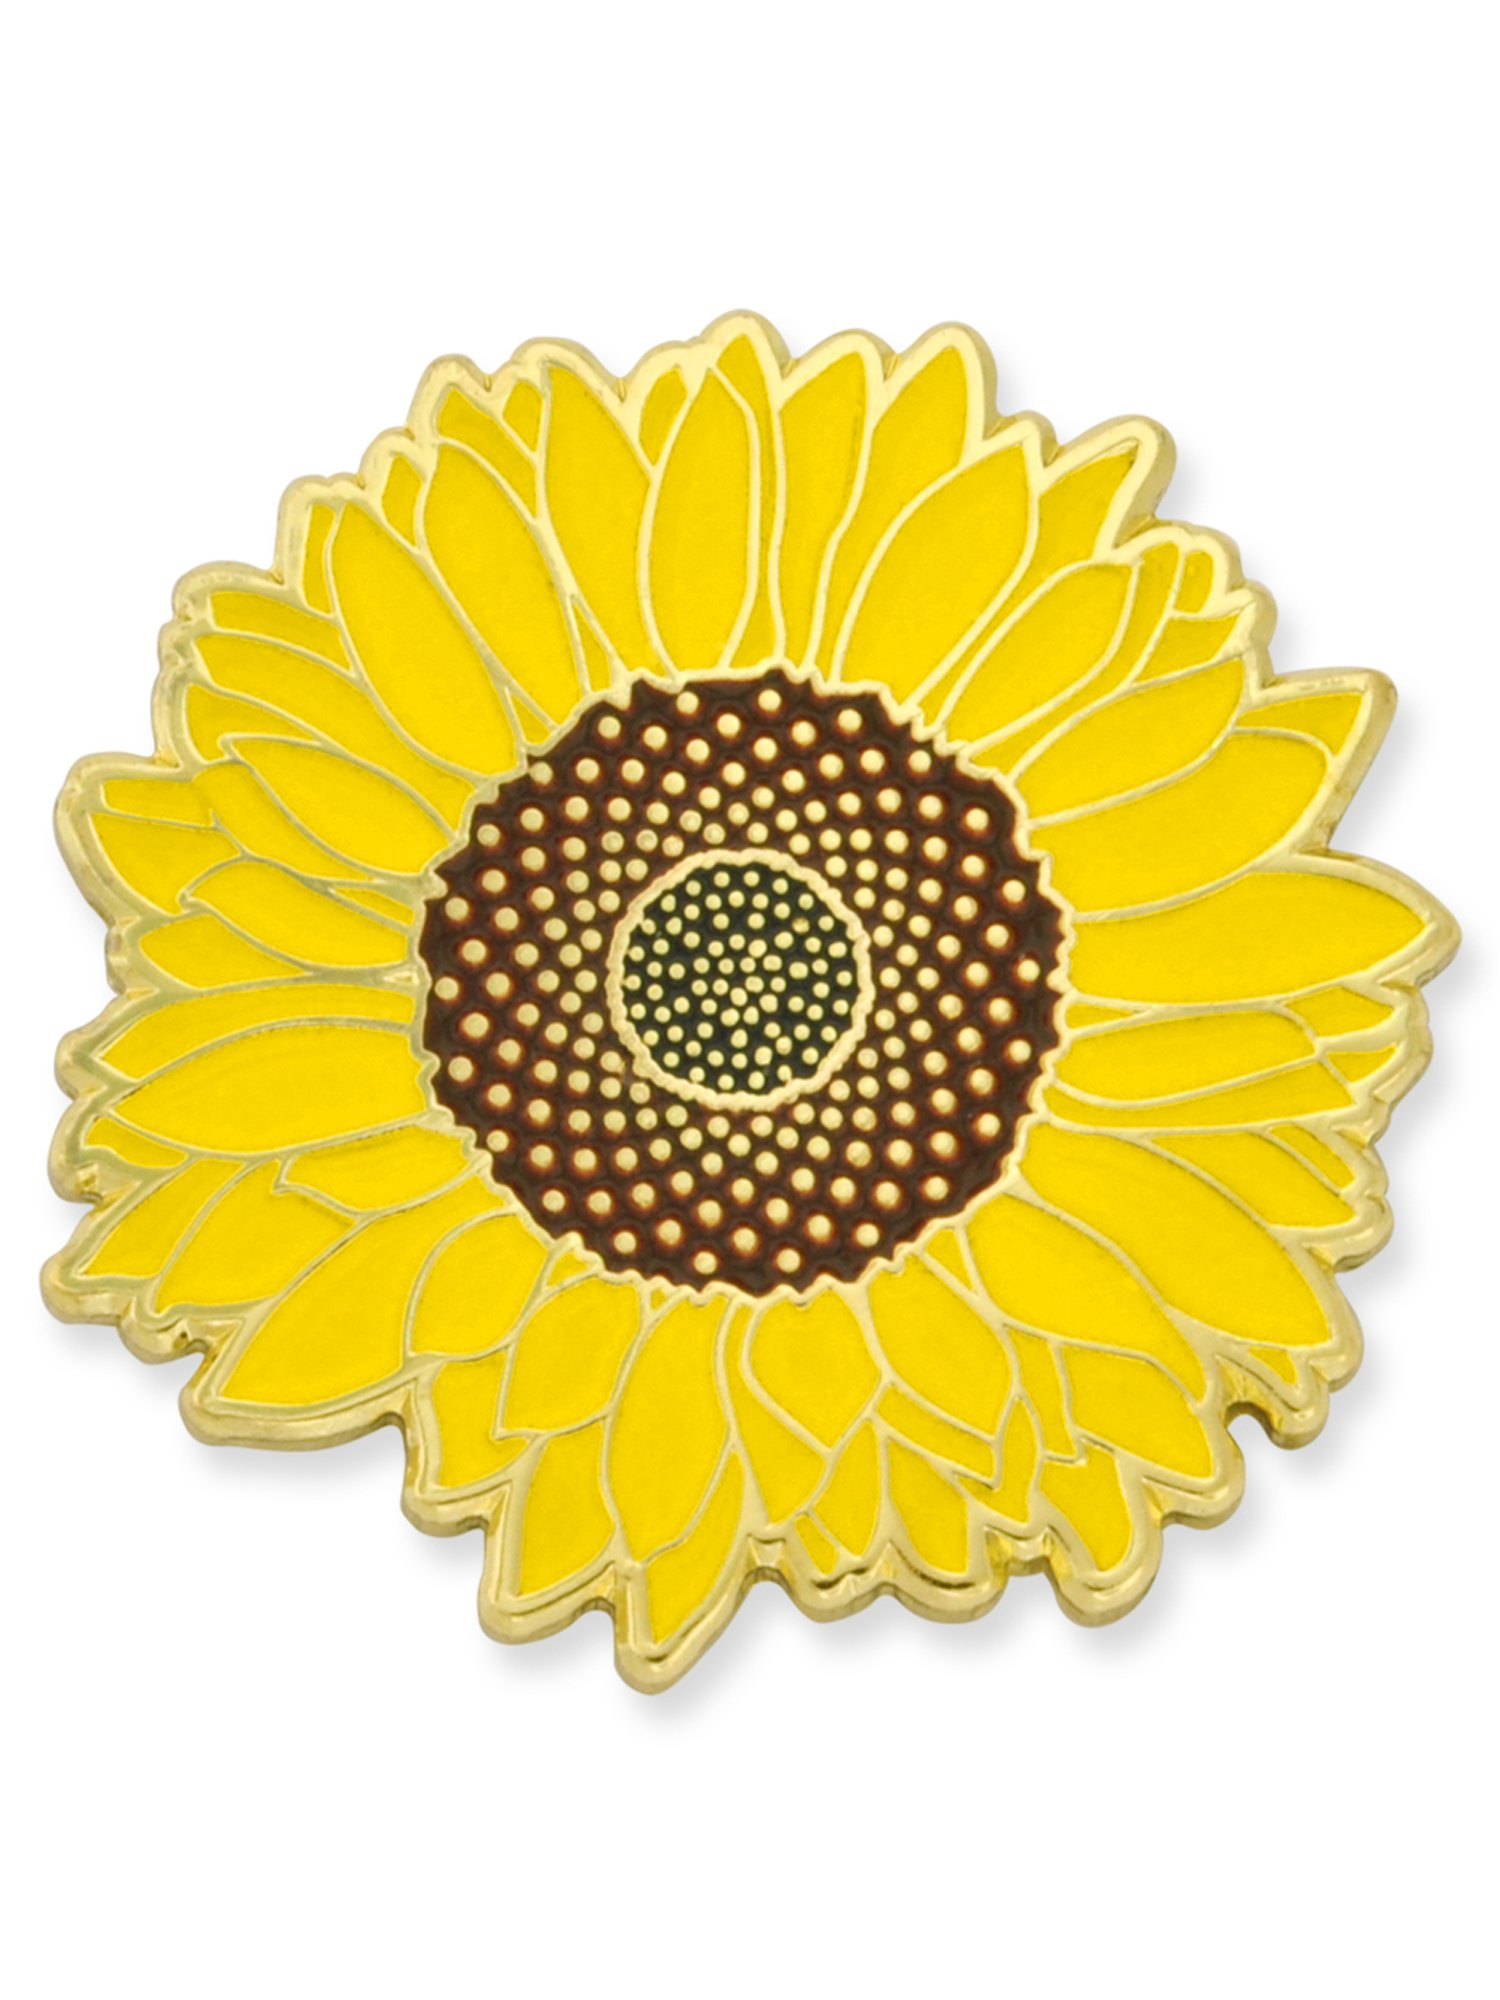 PinMart Detailed Yellow Sunflower Summer Enamel Lapel Brooch Pin